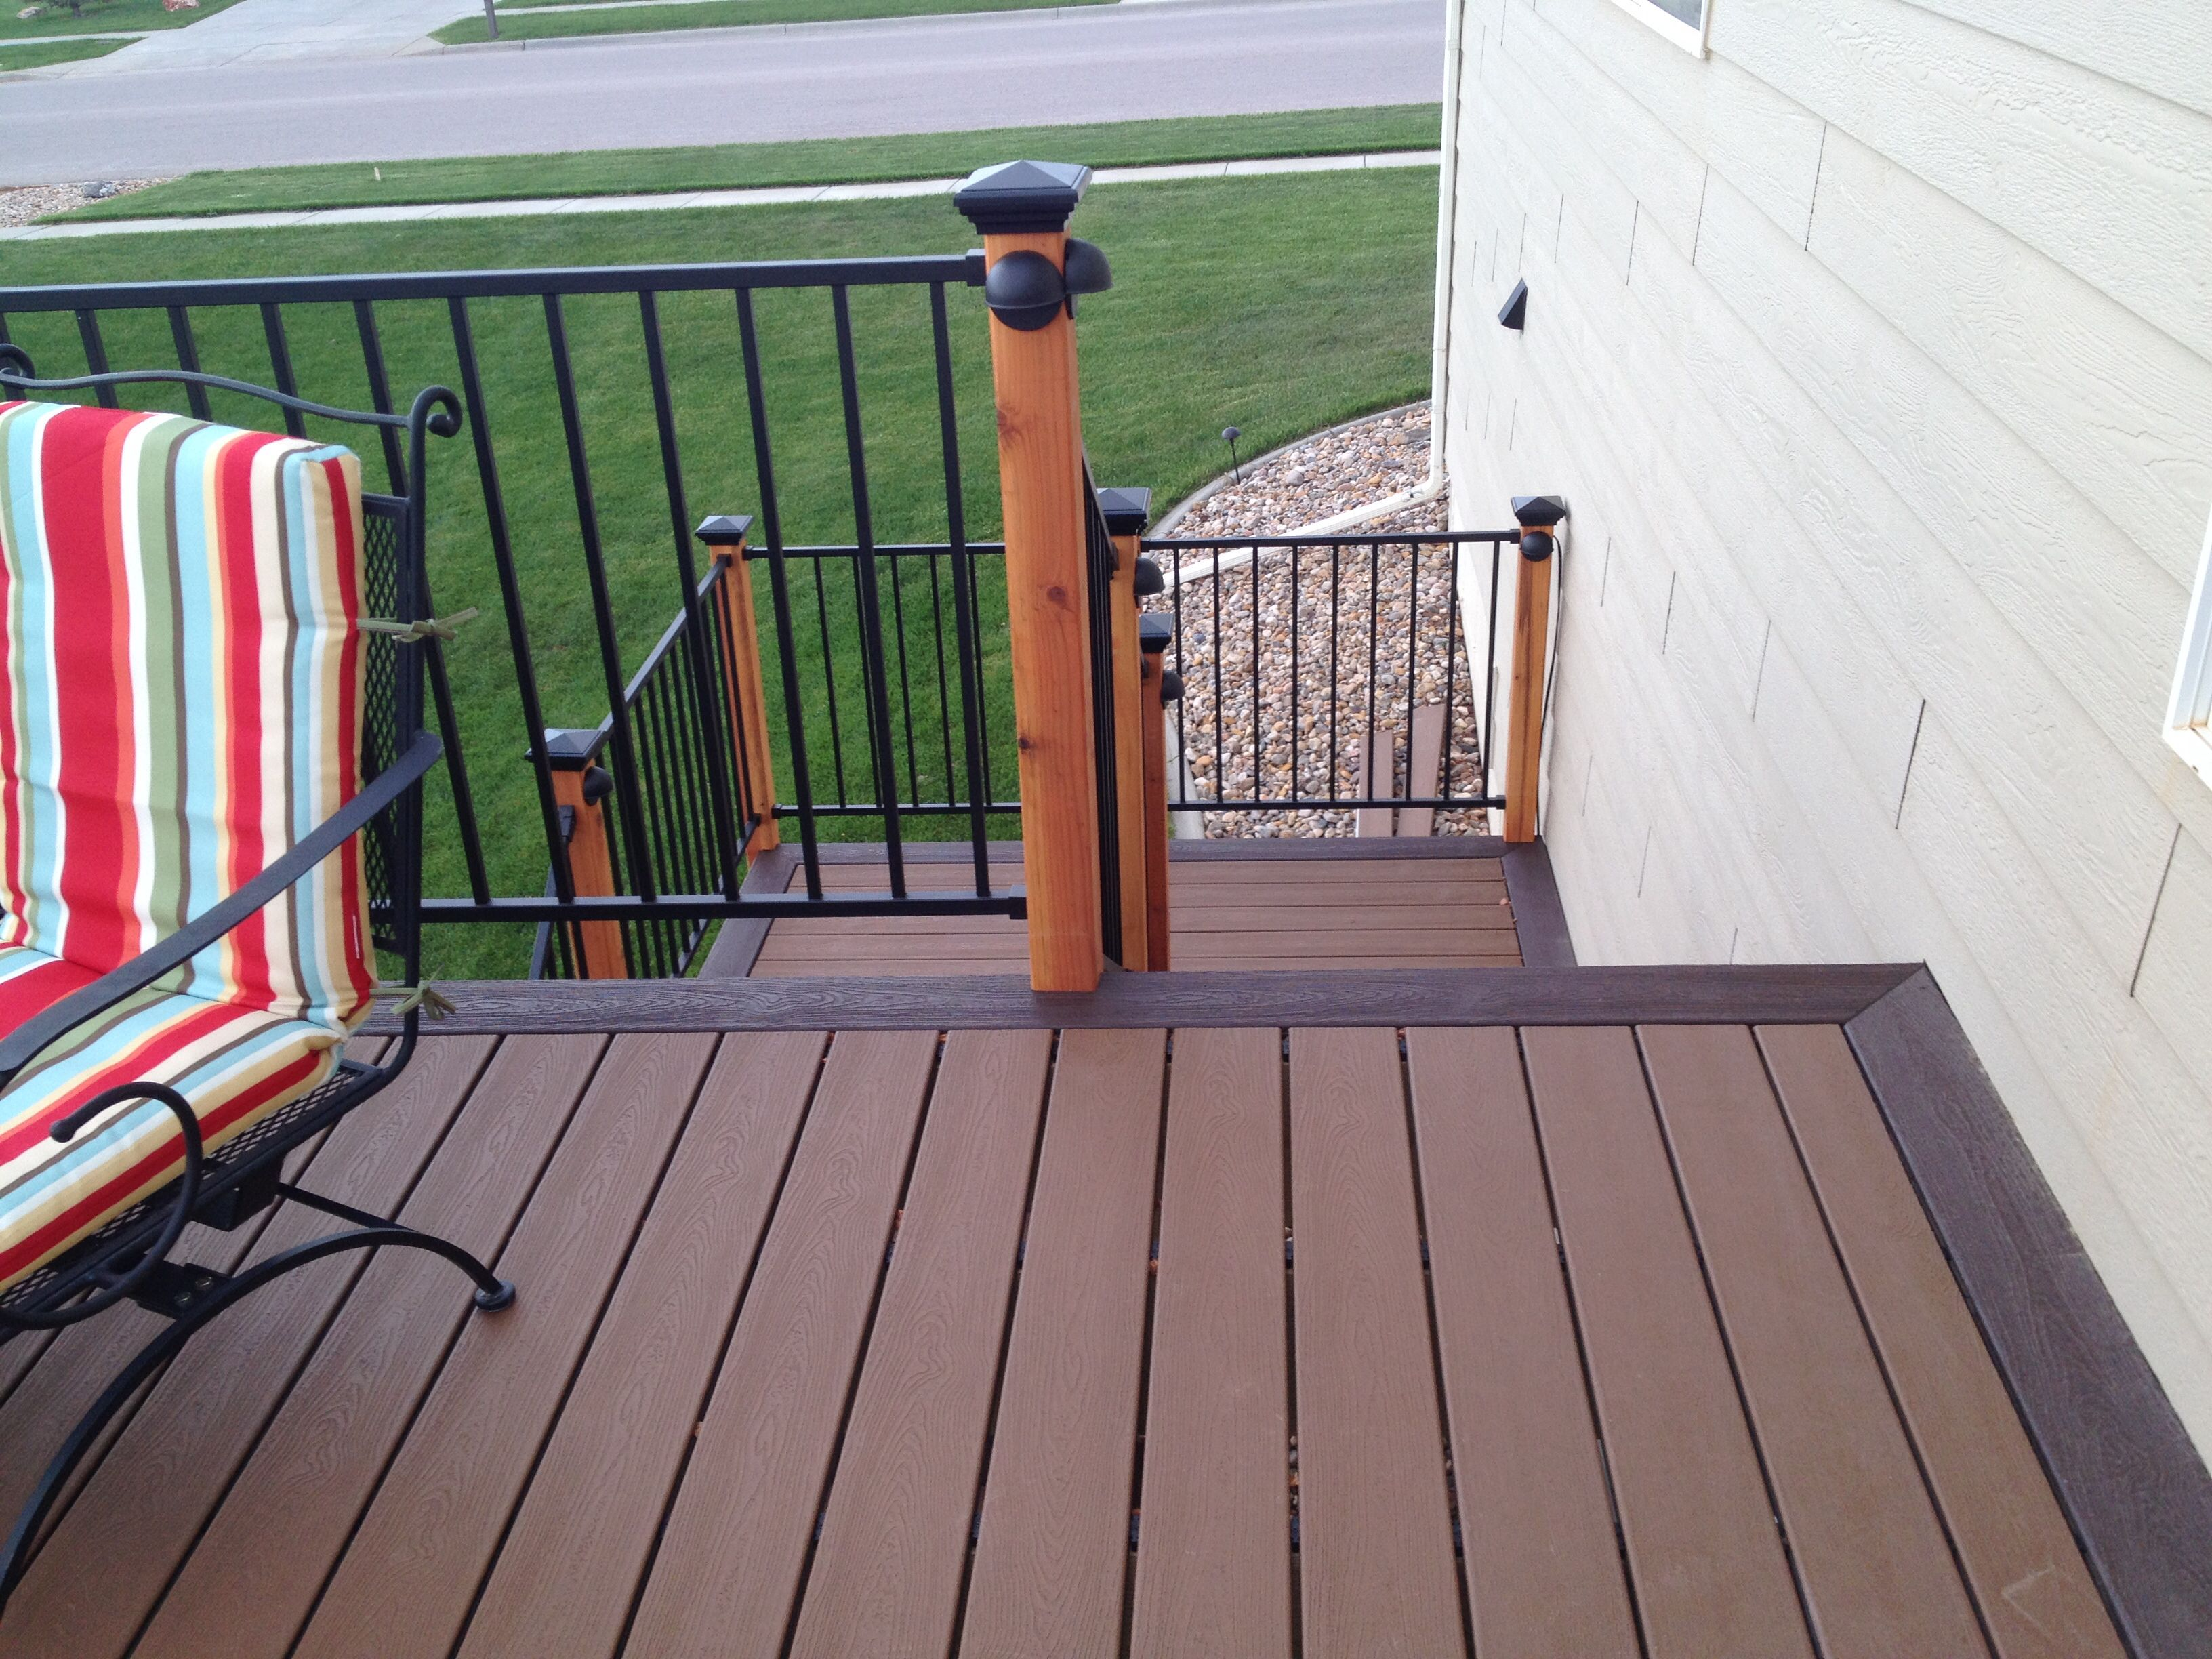 Trex Decking Vintage Lantern Border And Tree House For The Body Metal Railing With Deck Lights On Posts